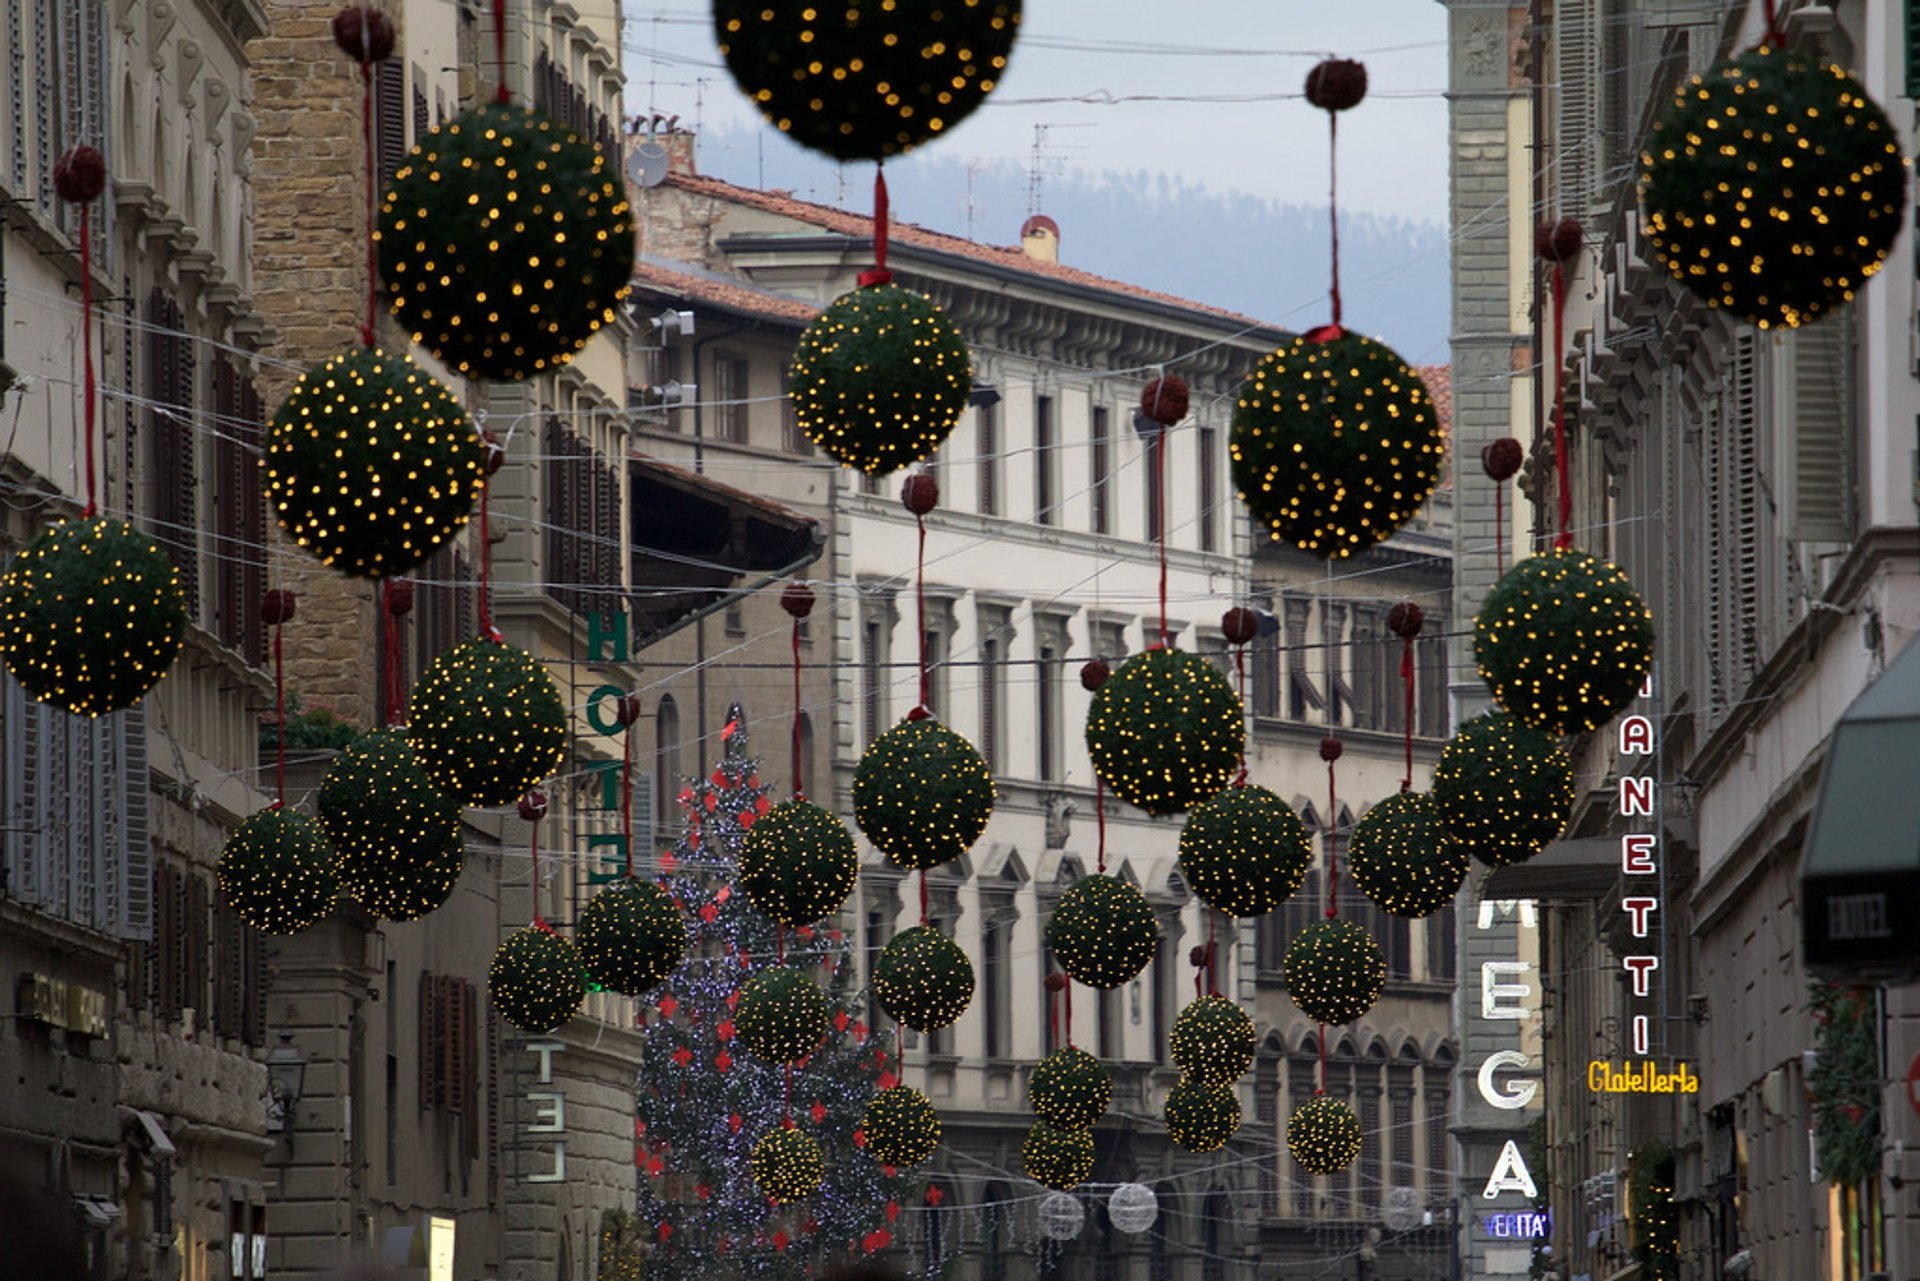 Christmas Market Florence 2020 Christmas Markets 2020 in Florence   Dates